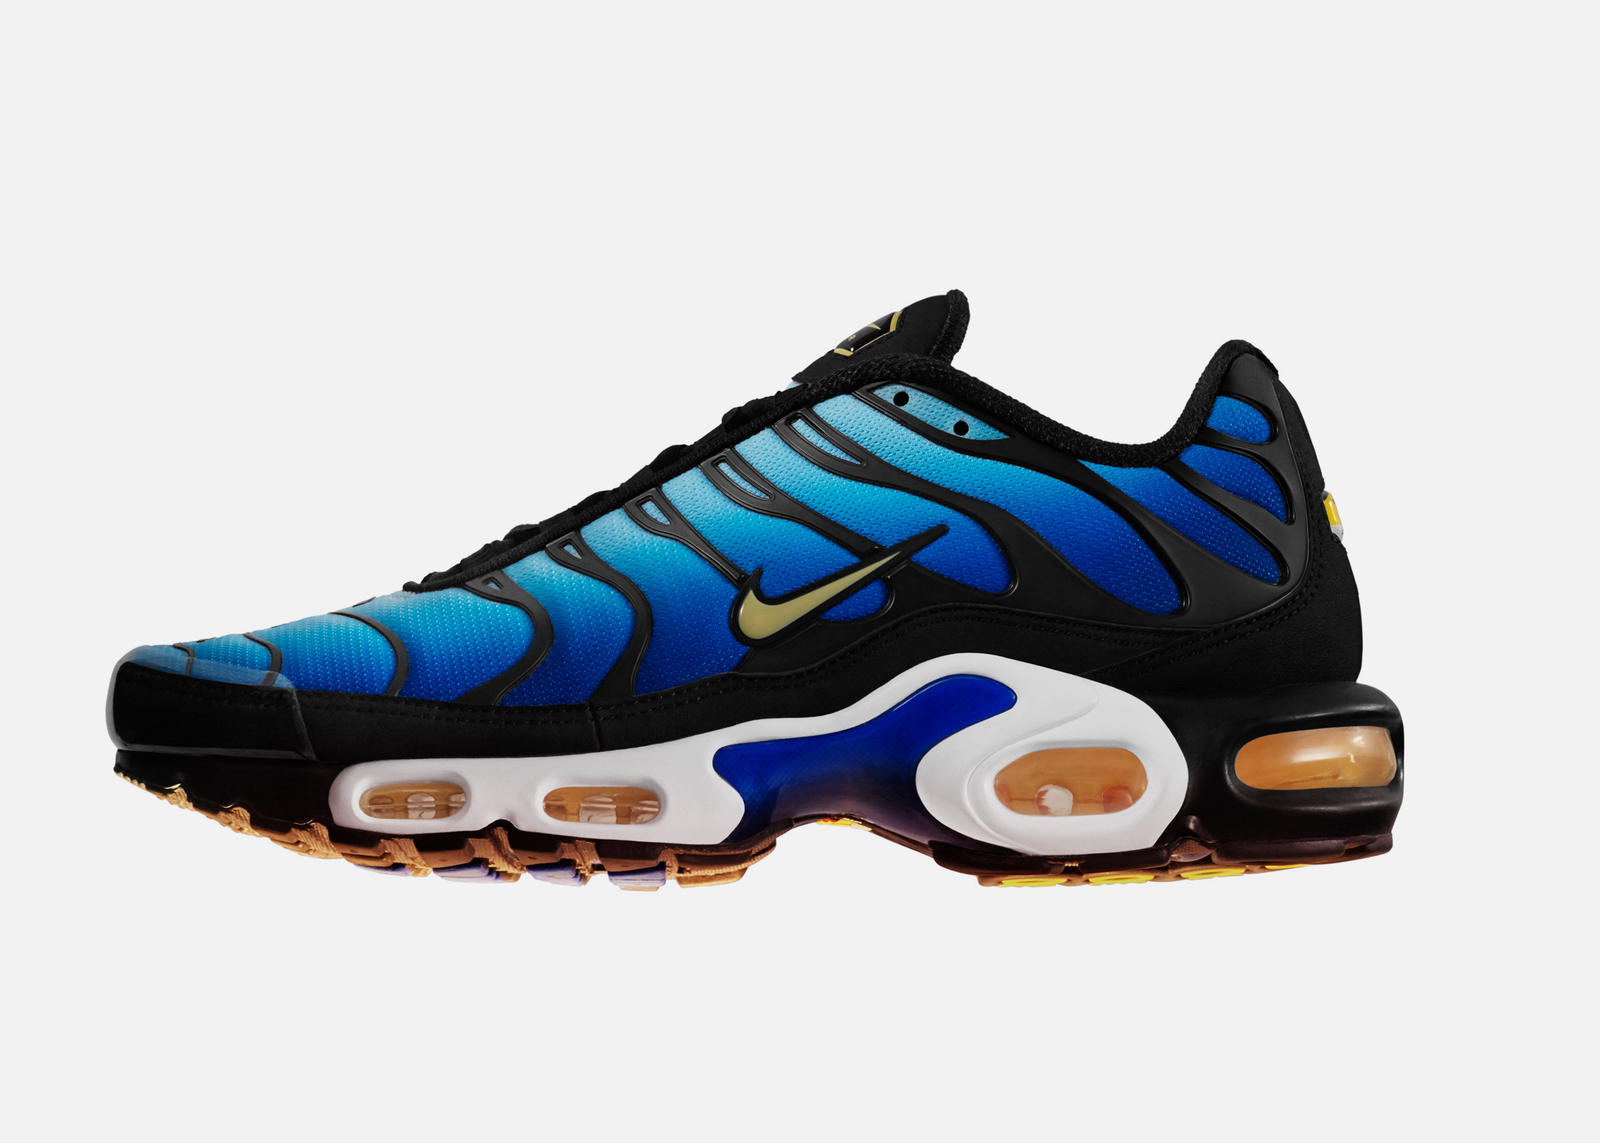 online retailer 067bd af64e The Untold Story of the Nike Air Max Plus 20